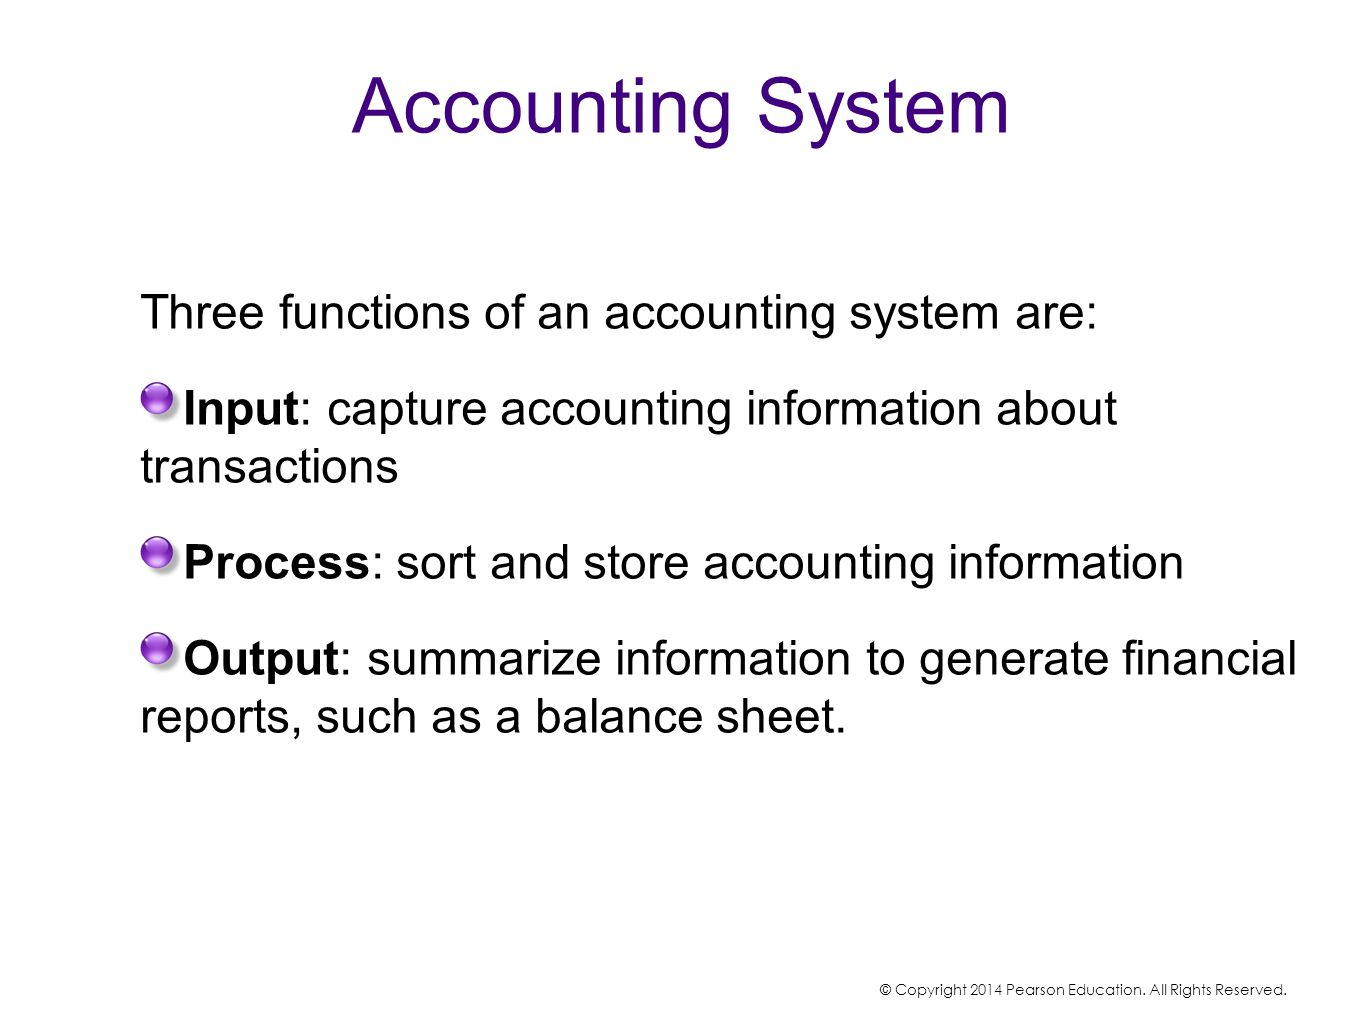 Accounting System Three functions of an accounting system are: Input: capture accounting information about transactions Process: sort and store accoun